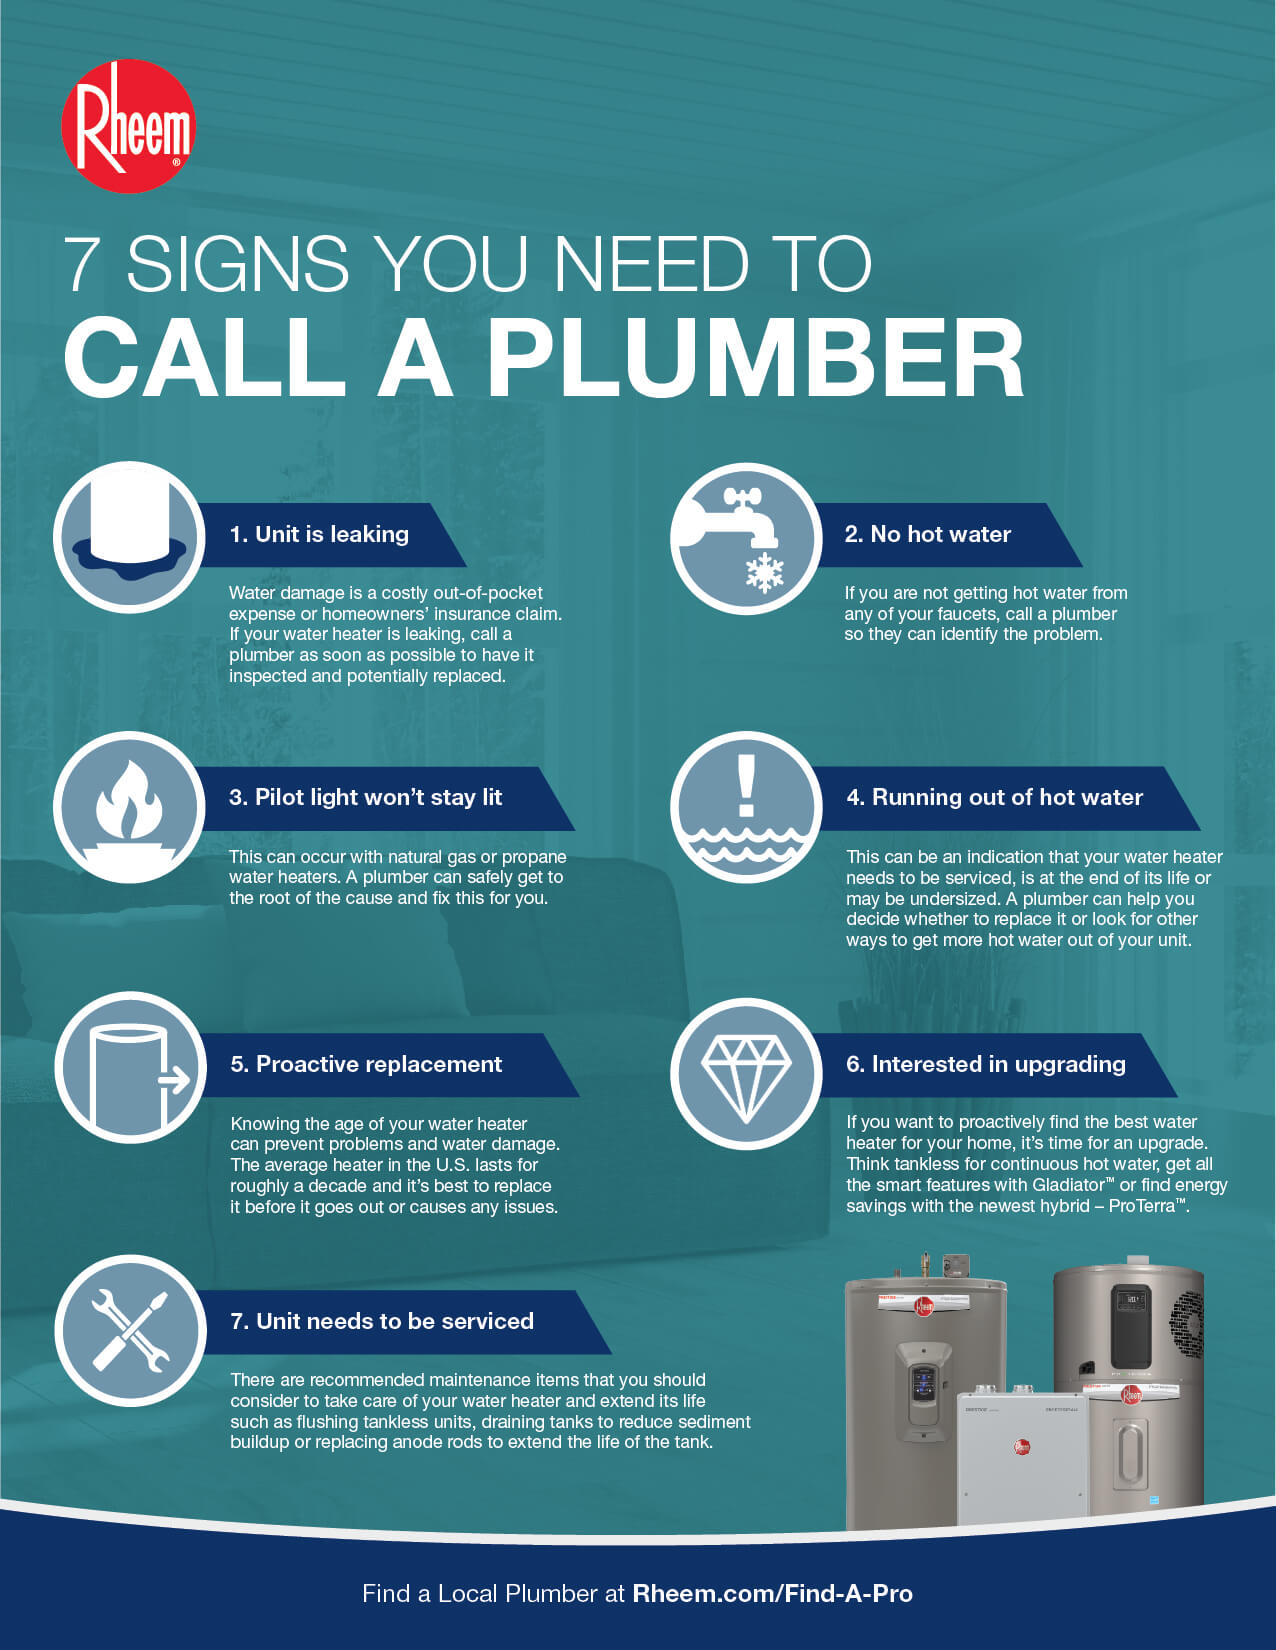 image of the printout with 7 signs you need to call a plumber